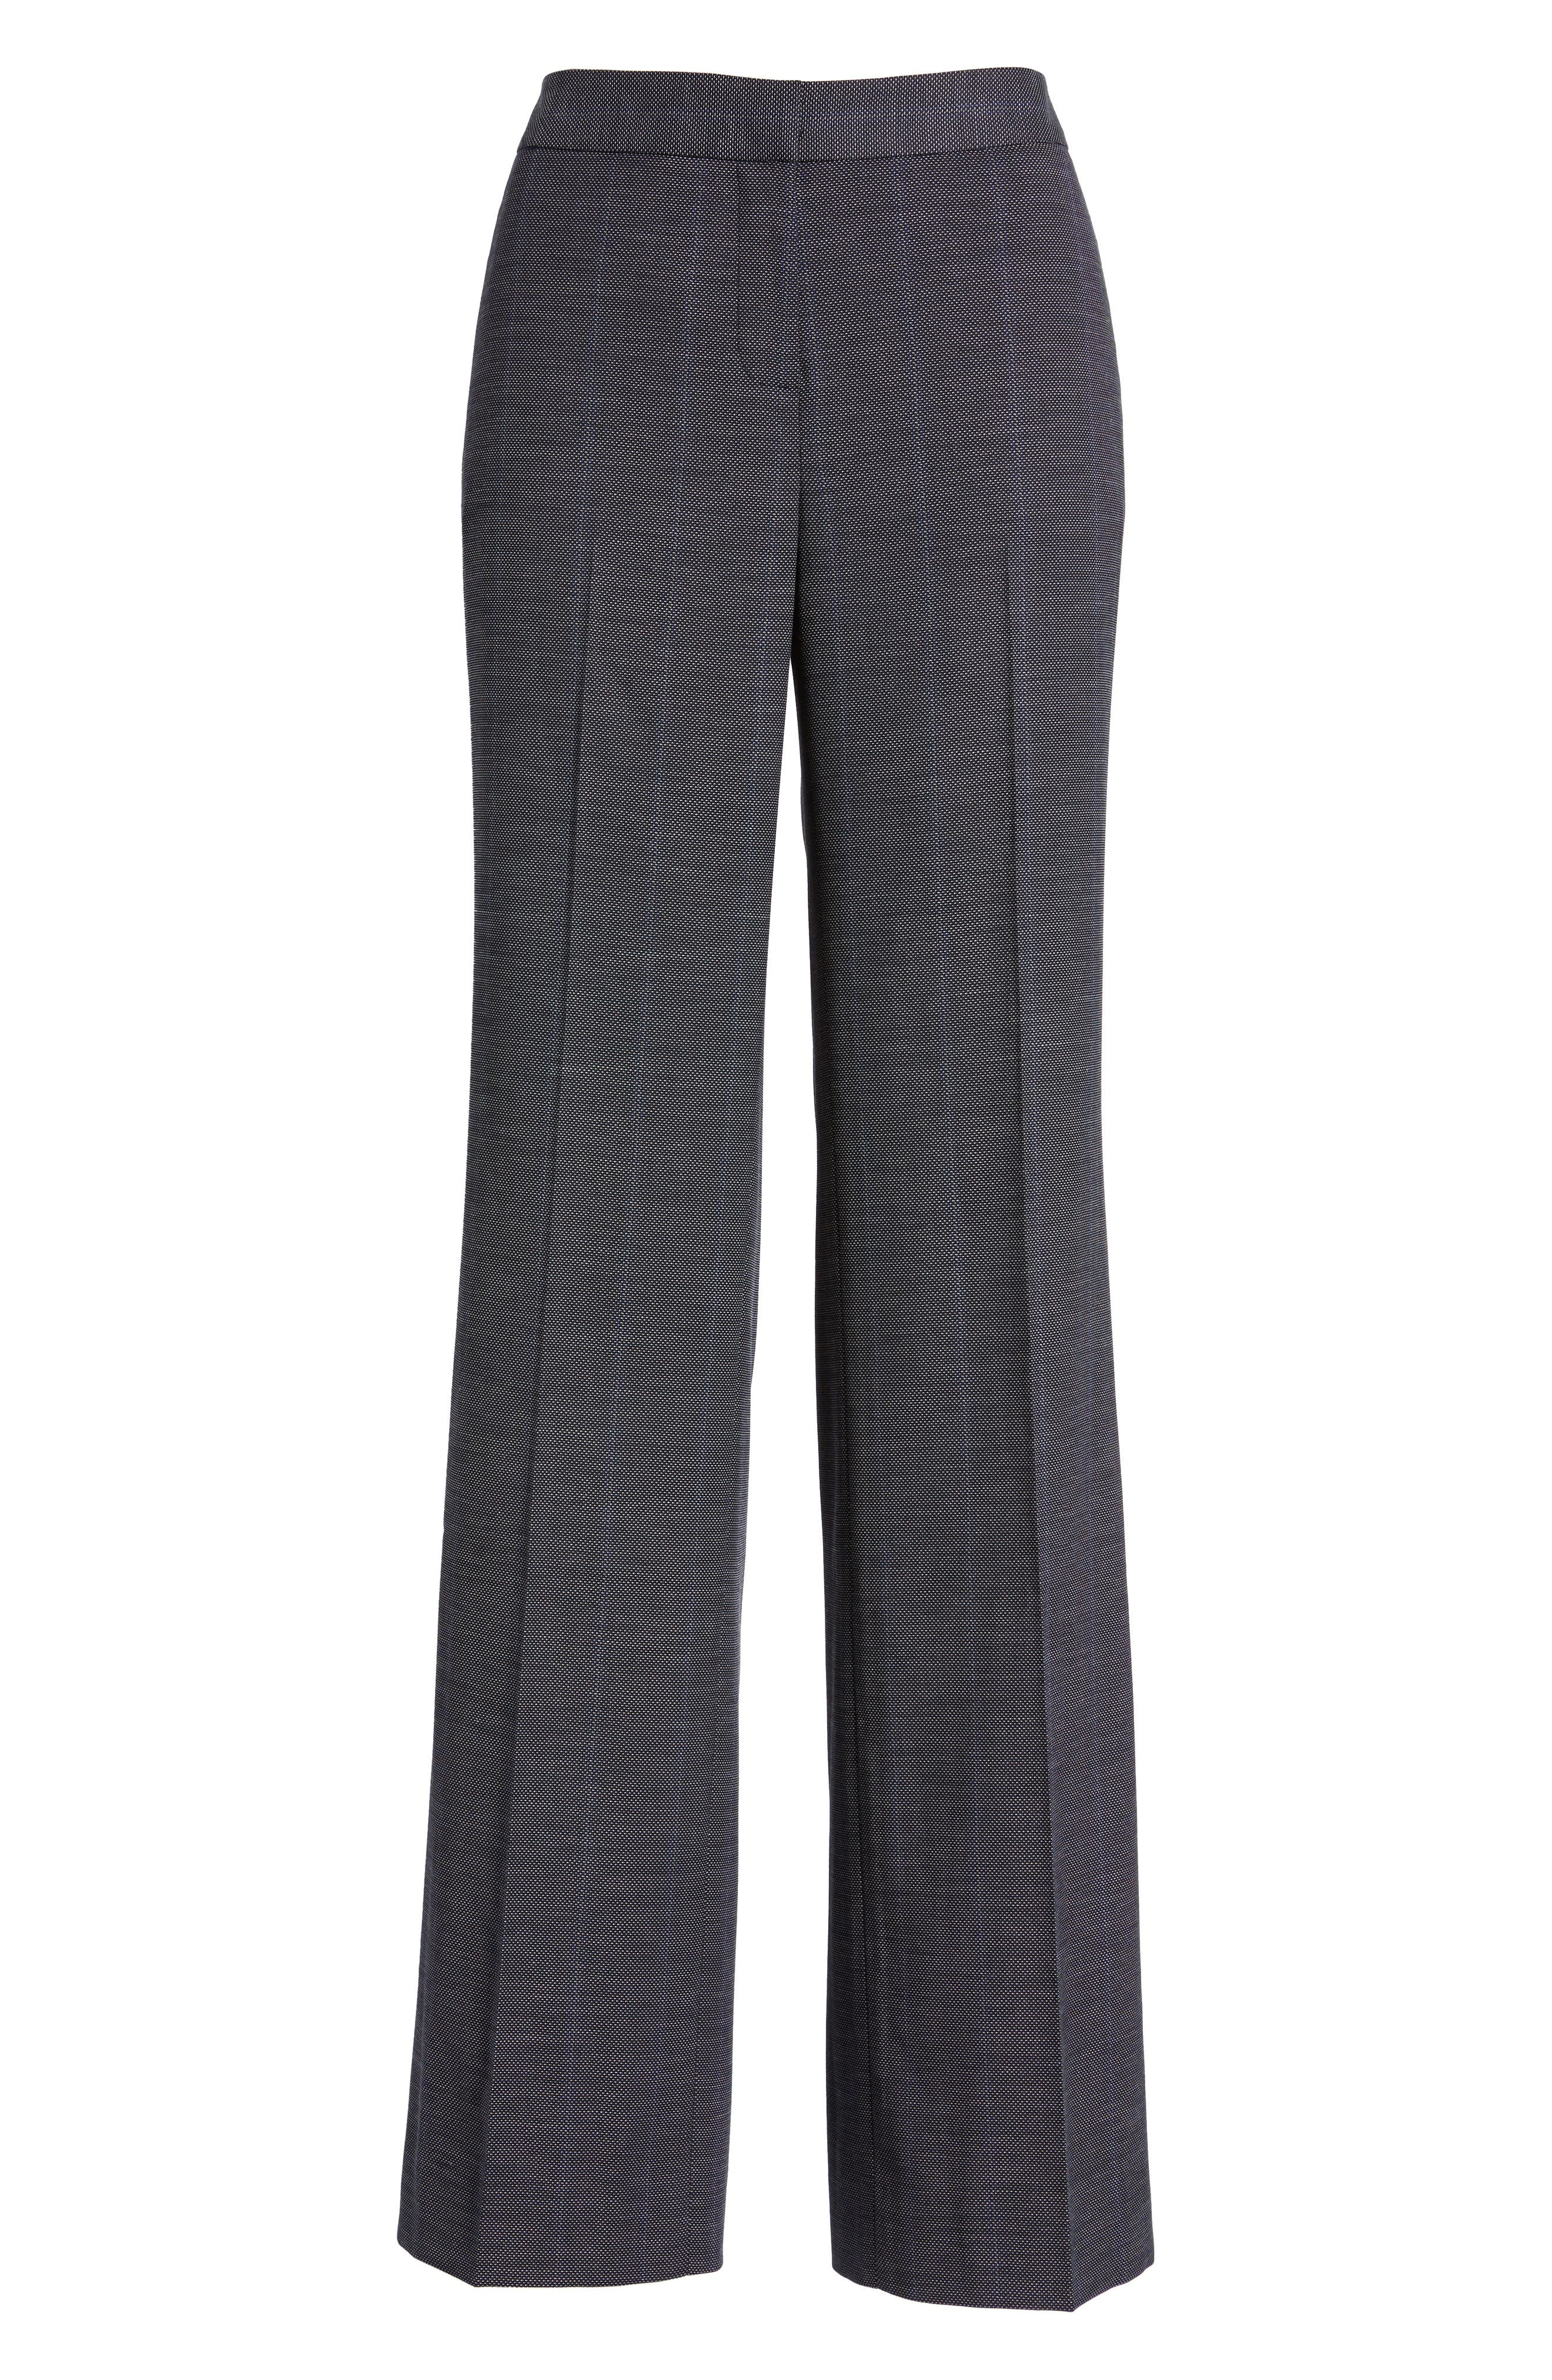 Cross Dye Suit Pants,                             Alternate thumbnail 6, color,